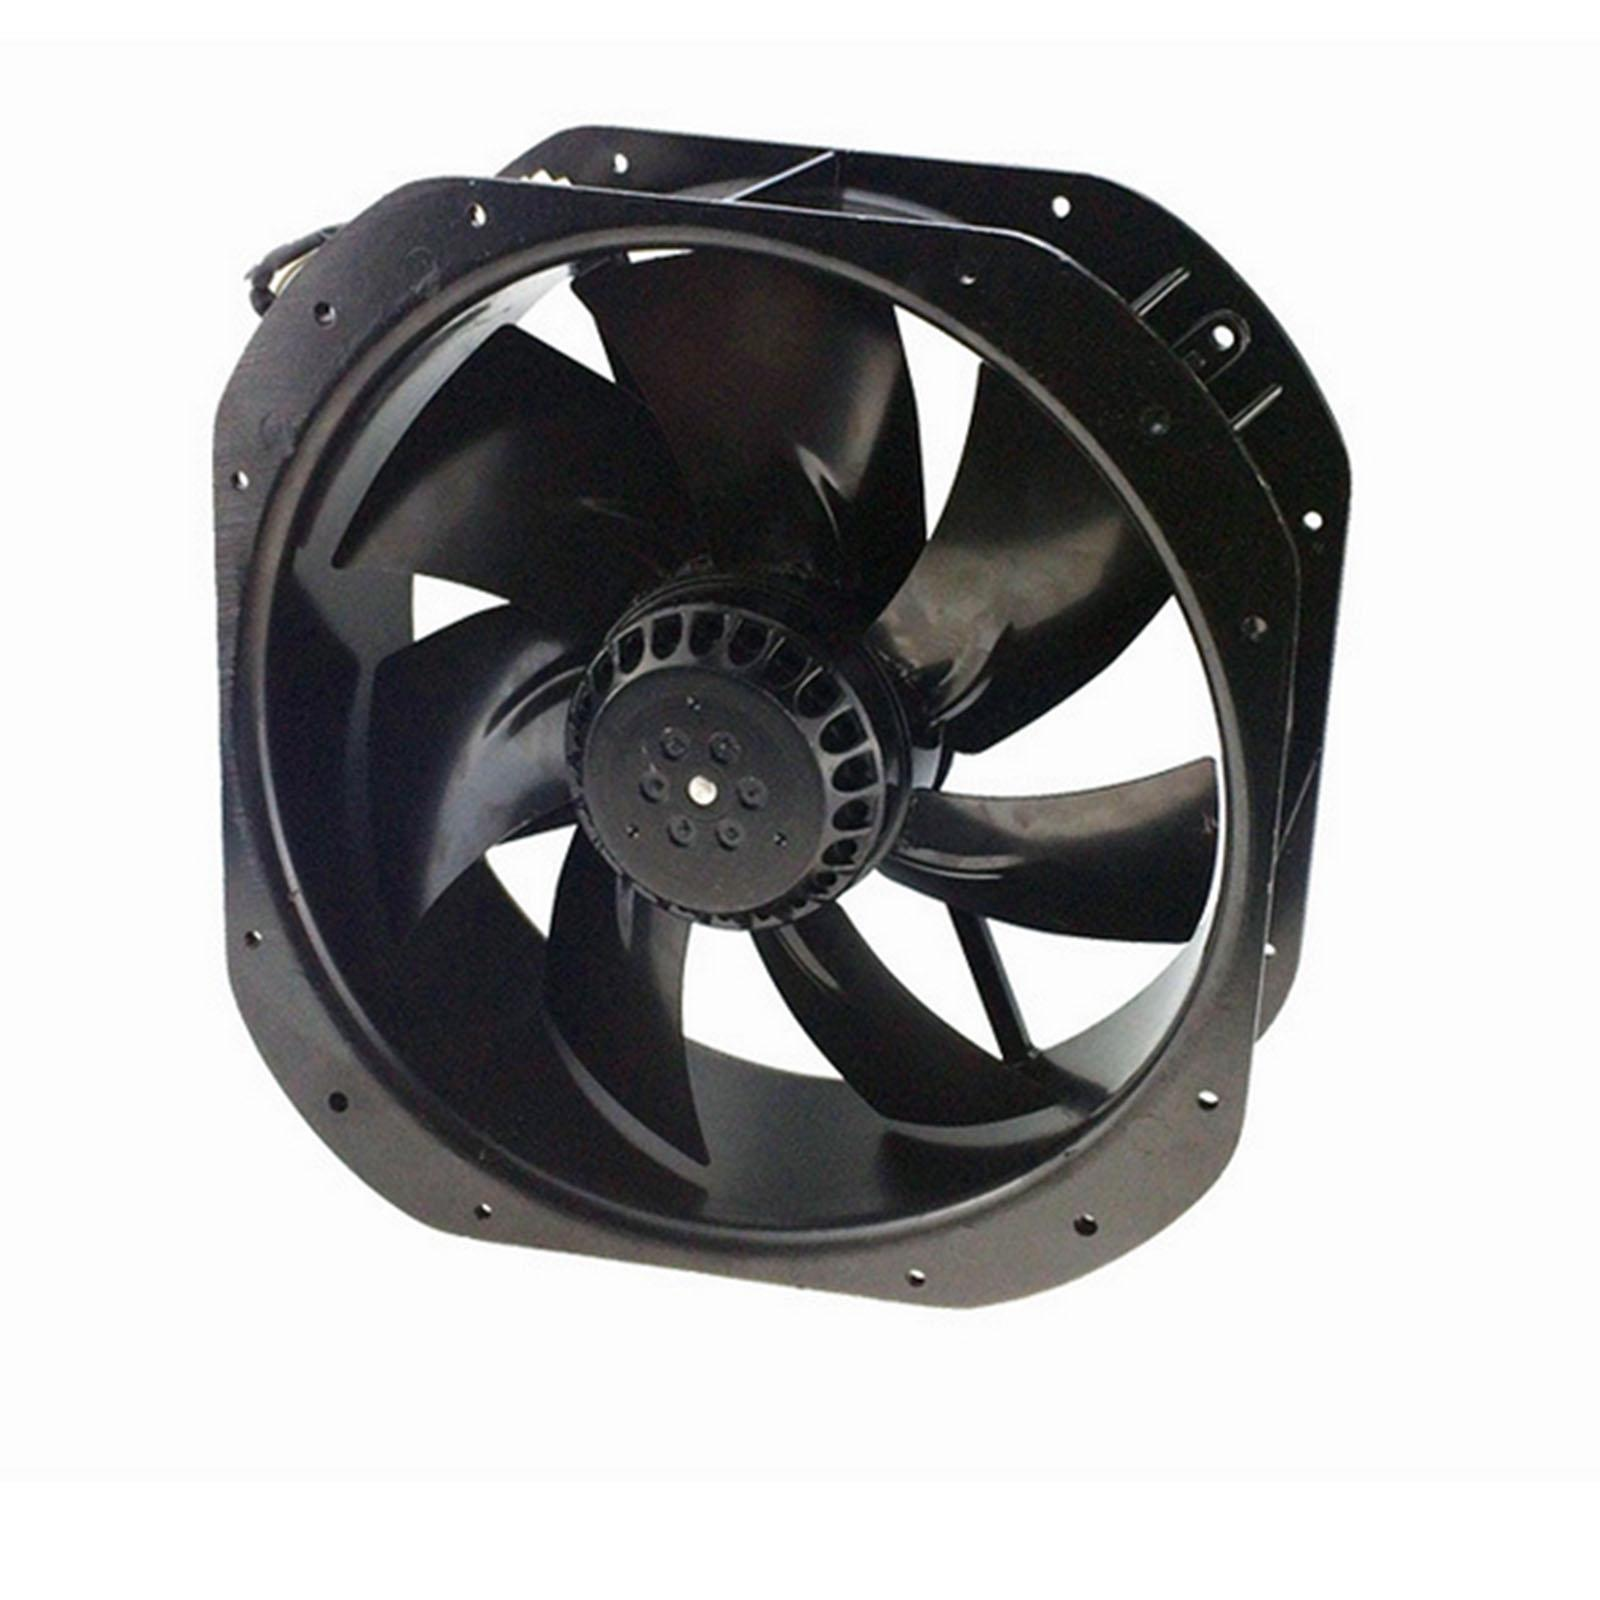 220V AC 280x280x80mm Axial Radiator Fan 1341CFM 2400RPM Ball Bearing High Speed